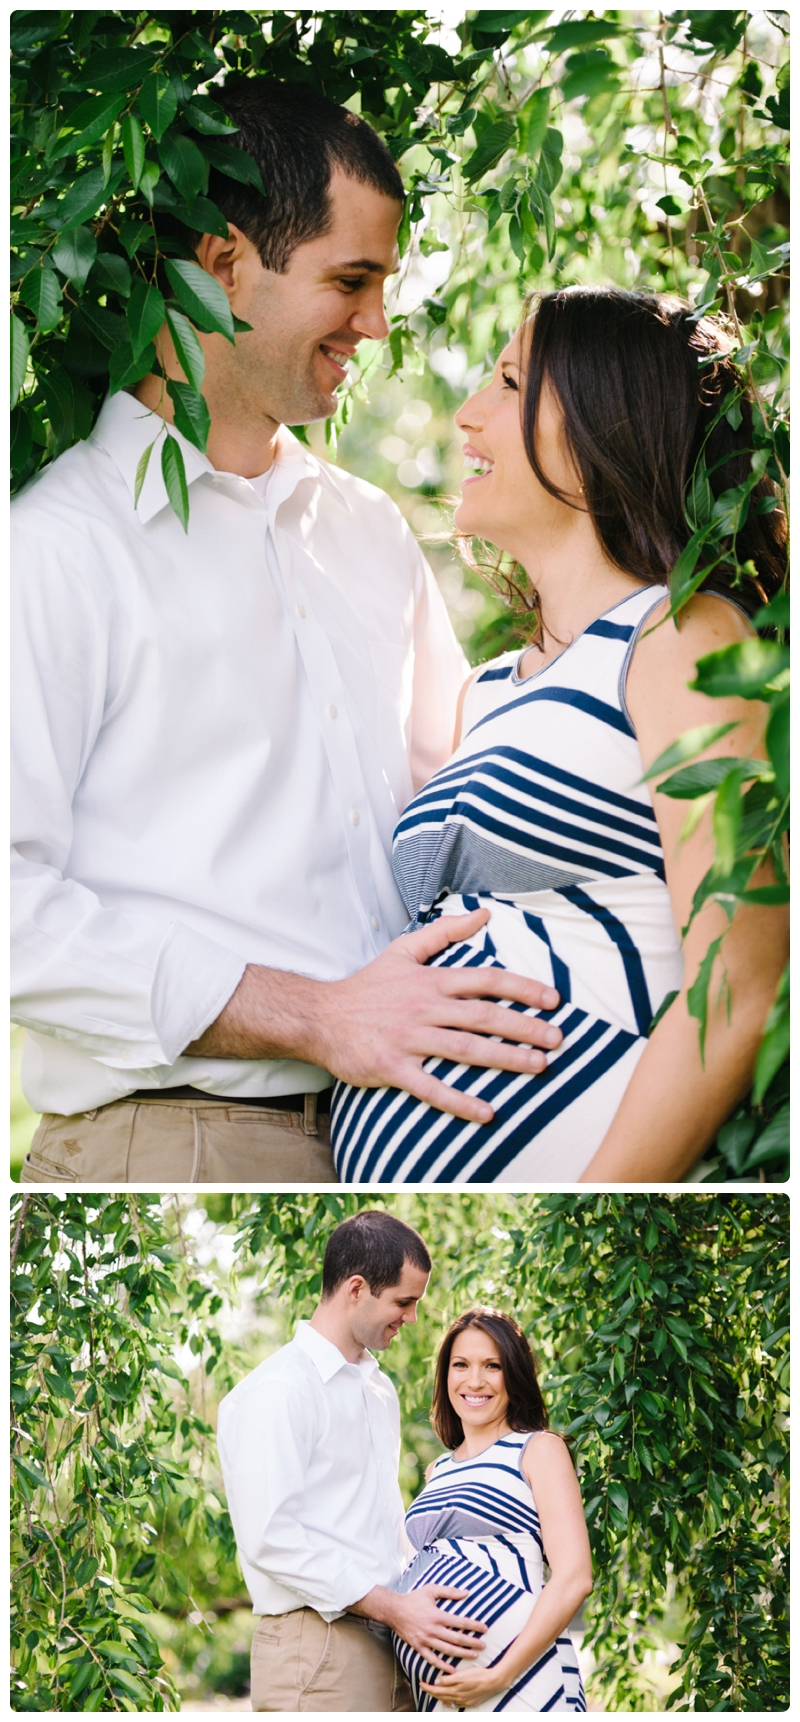 Maternity Photography in Washington, DC by www.rachaelfosterphoto.com_0057.jpg